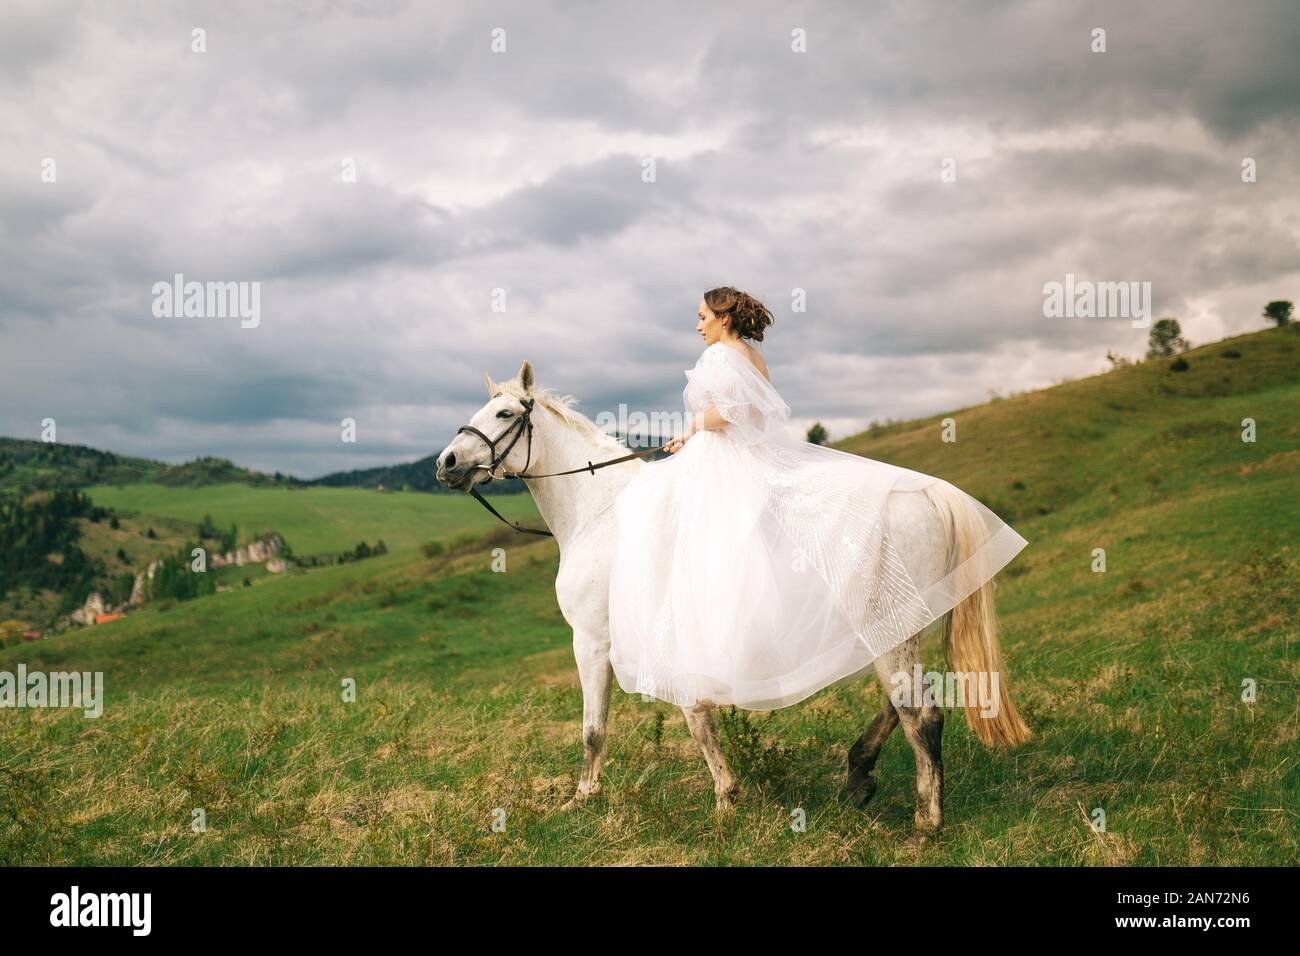 Bride In Wedding Dress Rides A White Horse Stock Photo Alamy